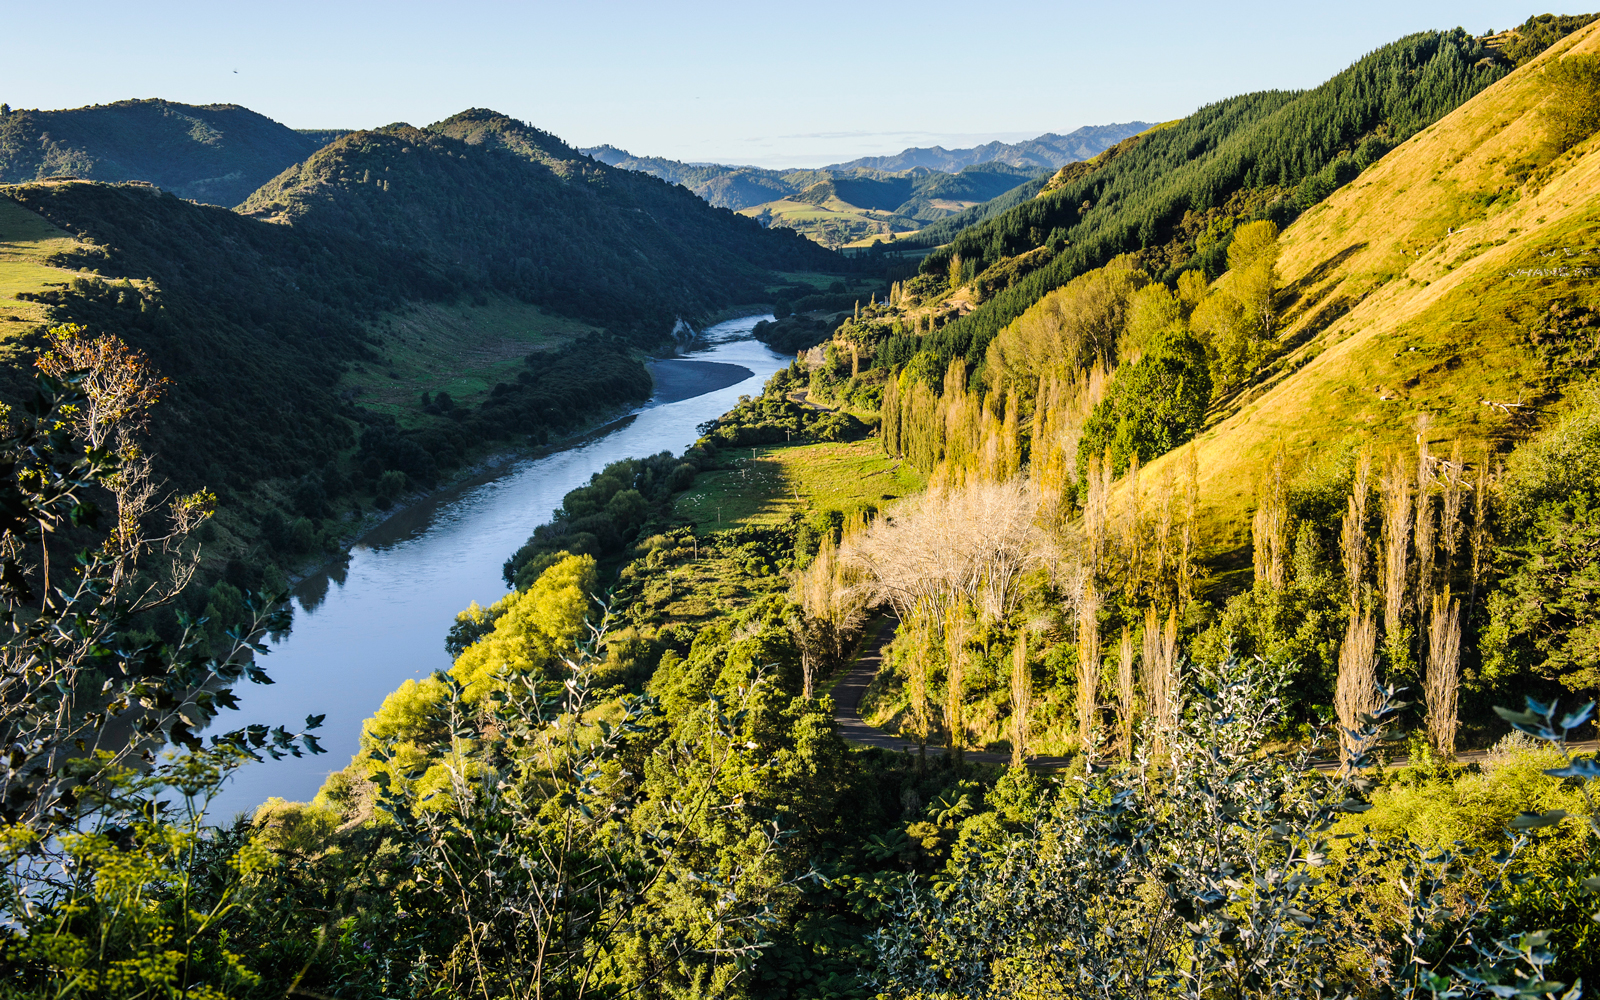 New Zealand: Whanganui River Given Legal Rights